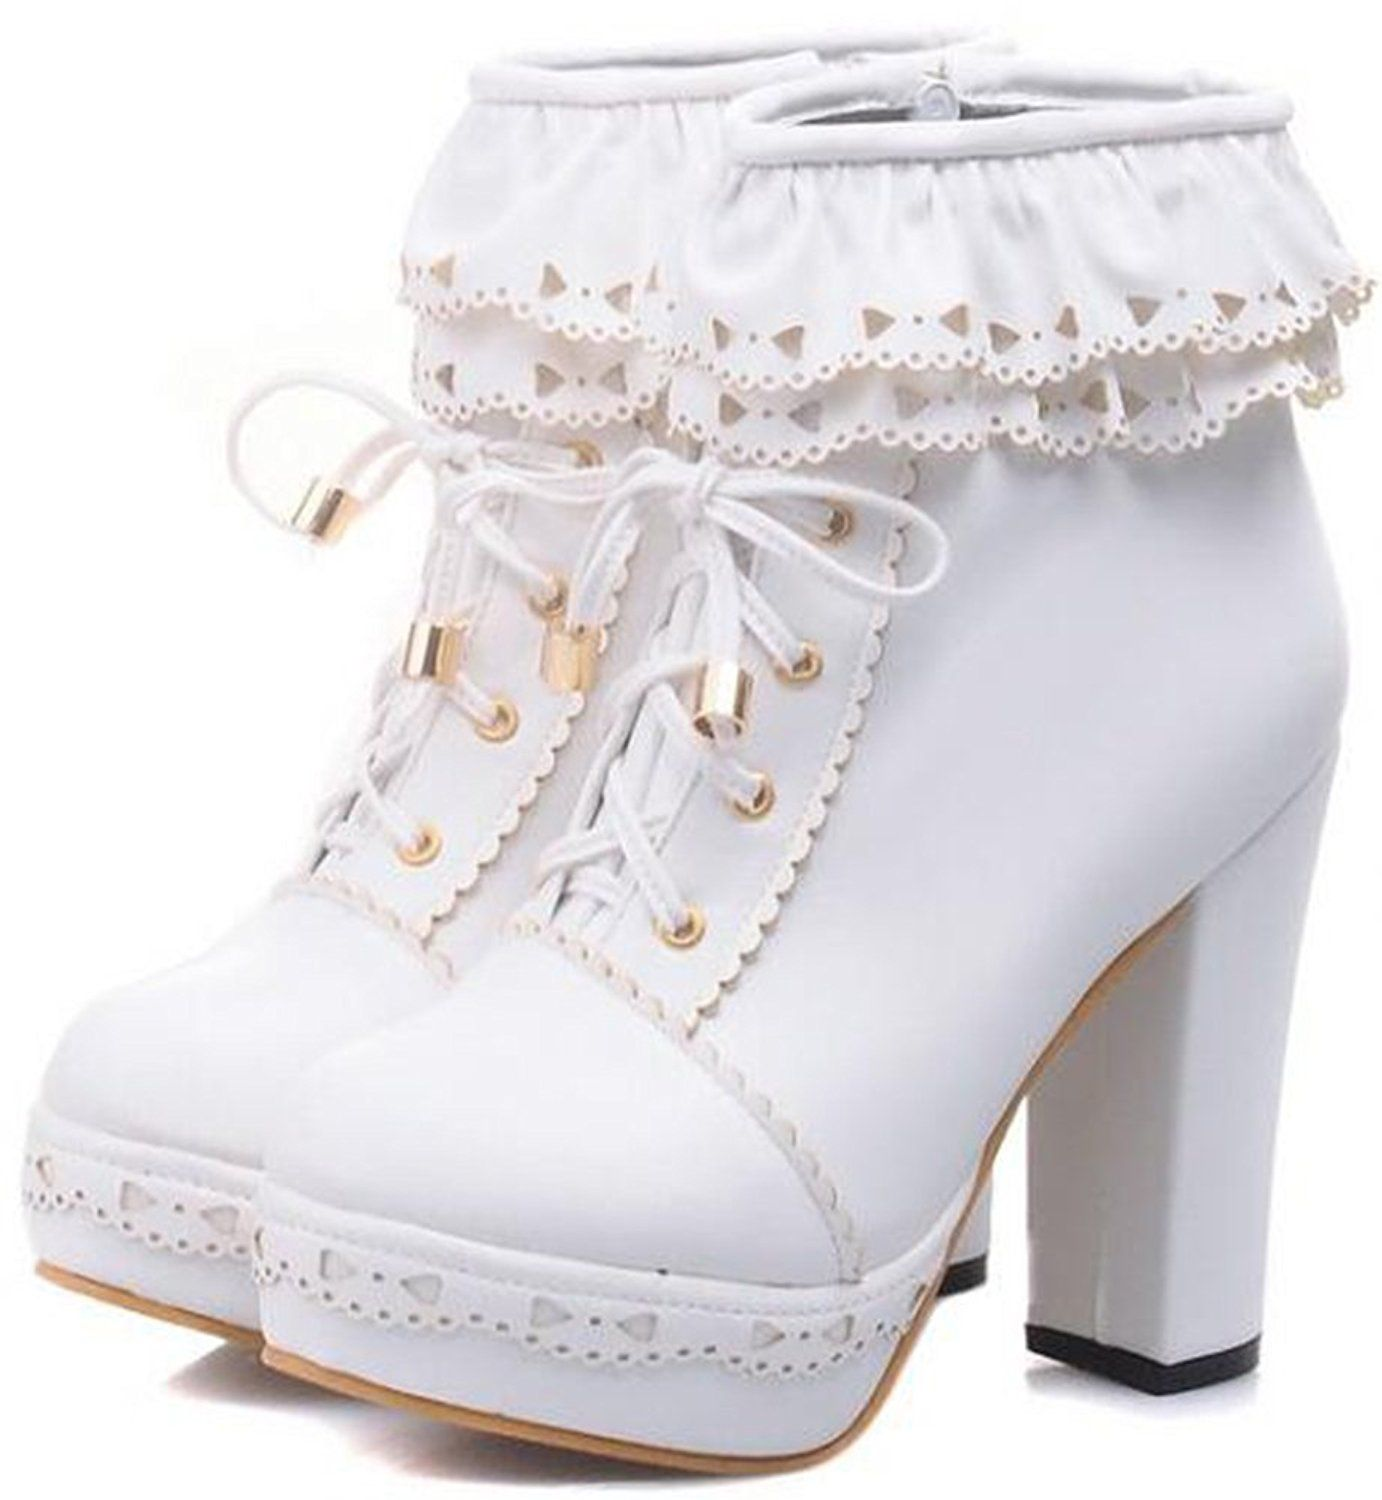 Women's Elegant Falbala Splicing Round Toe Lace-up Bridal Booties Side Zipper Chunky High Heel Platform Ankle Boots